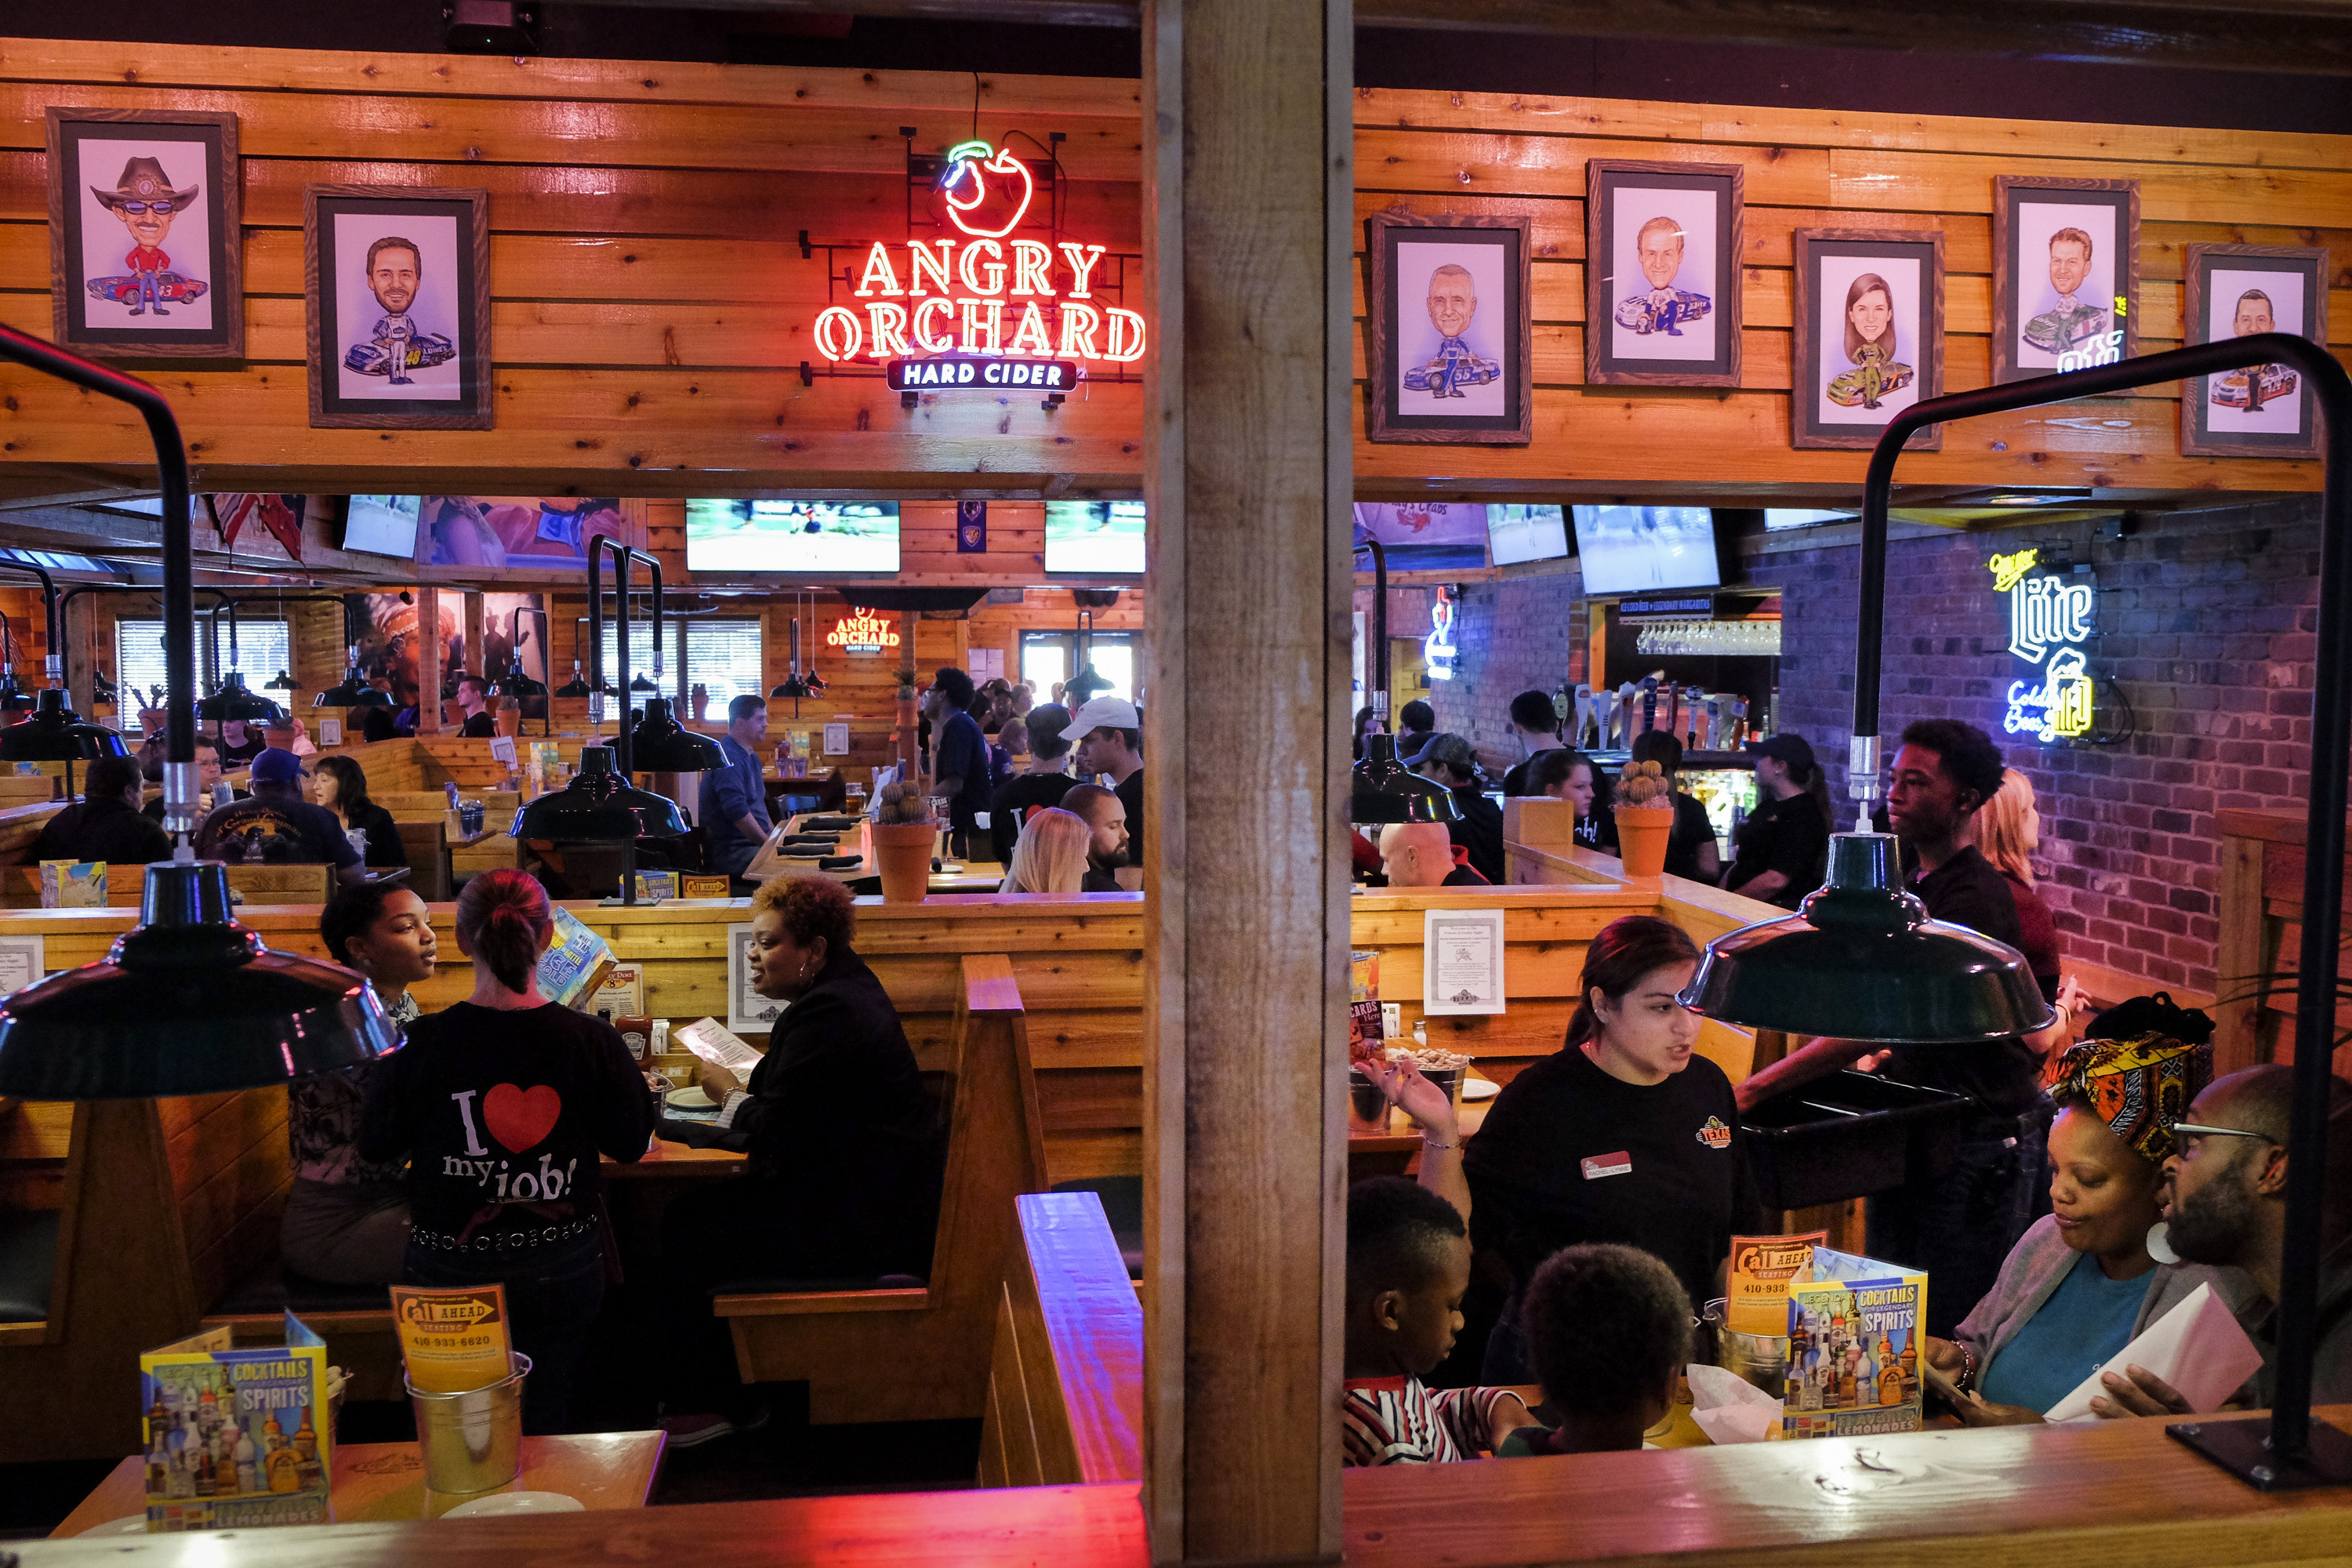 Texas Roadhouse: Age Discrimination Against Job Applicants Over 40